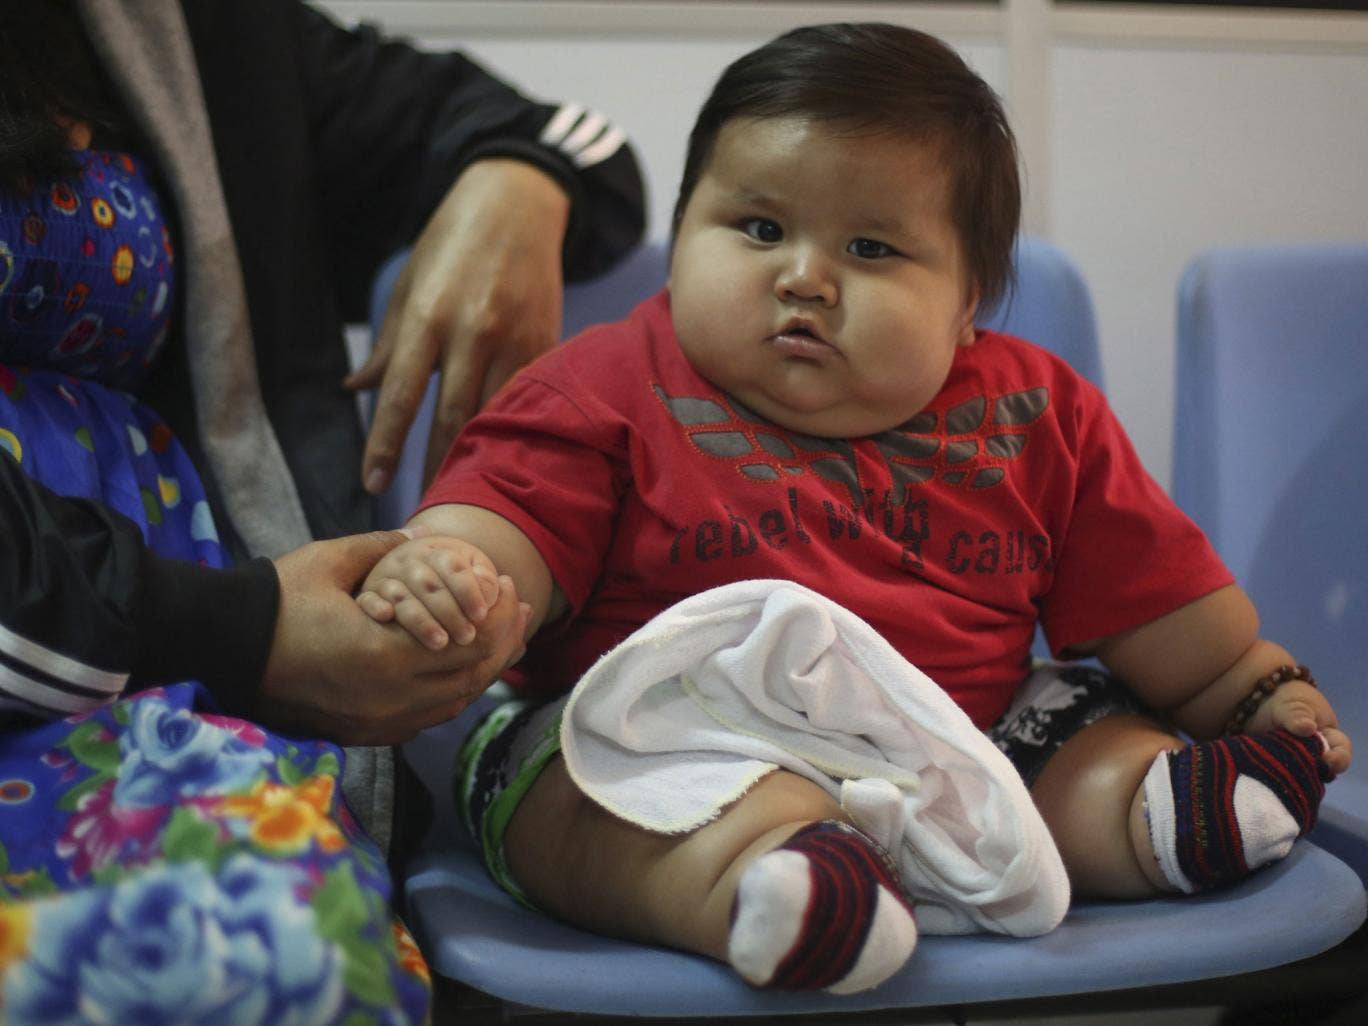 Tipping the scales at over 3st 8-month-old Santiago Mendoza weighs the same as an average six-year-old child, and weighs over three times more than he should, doctors have said.